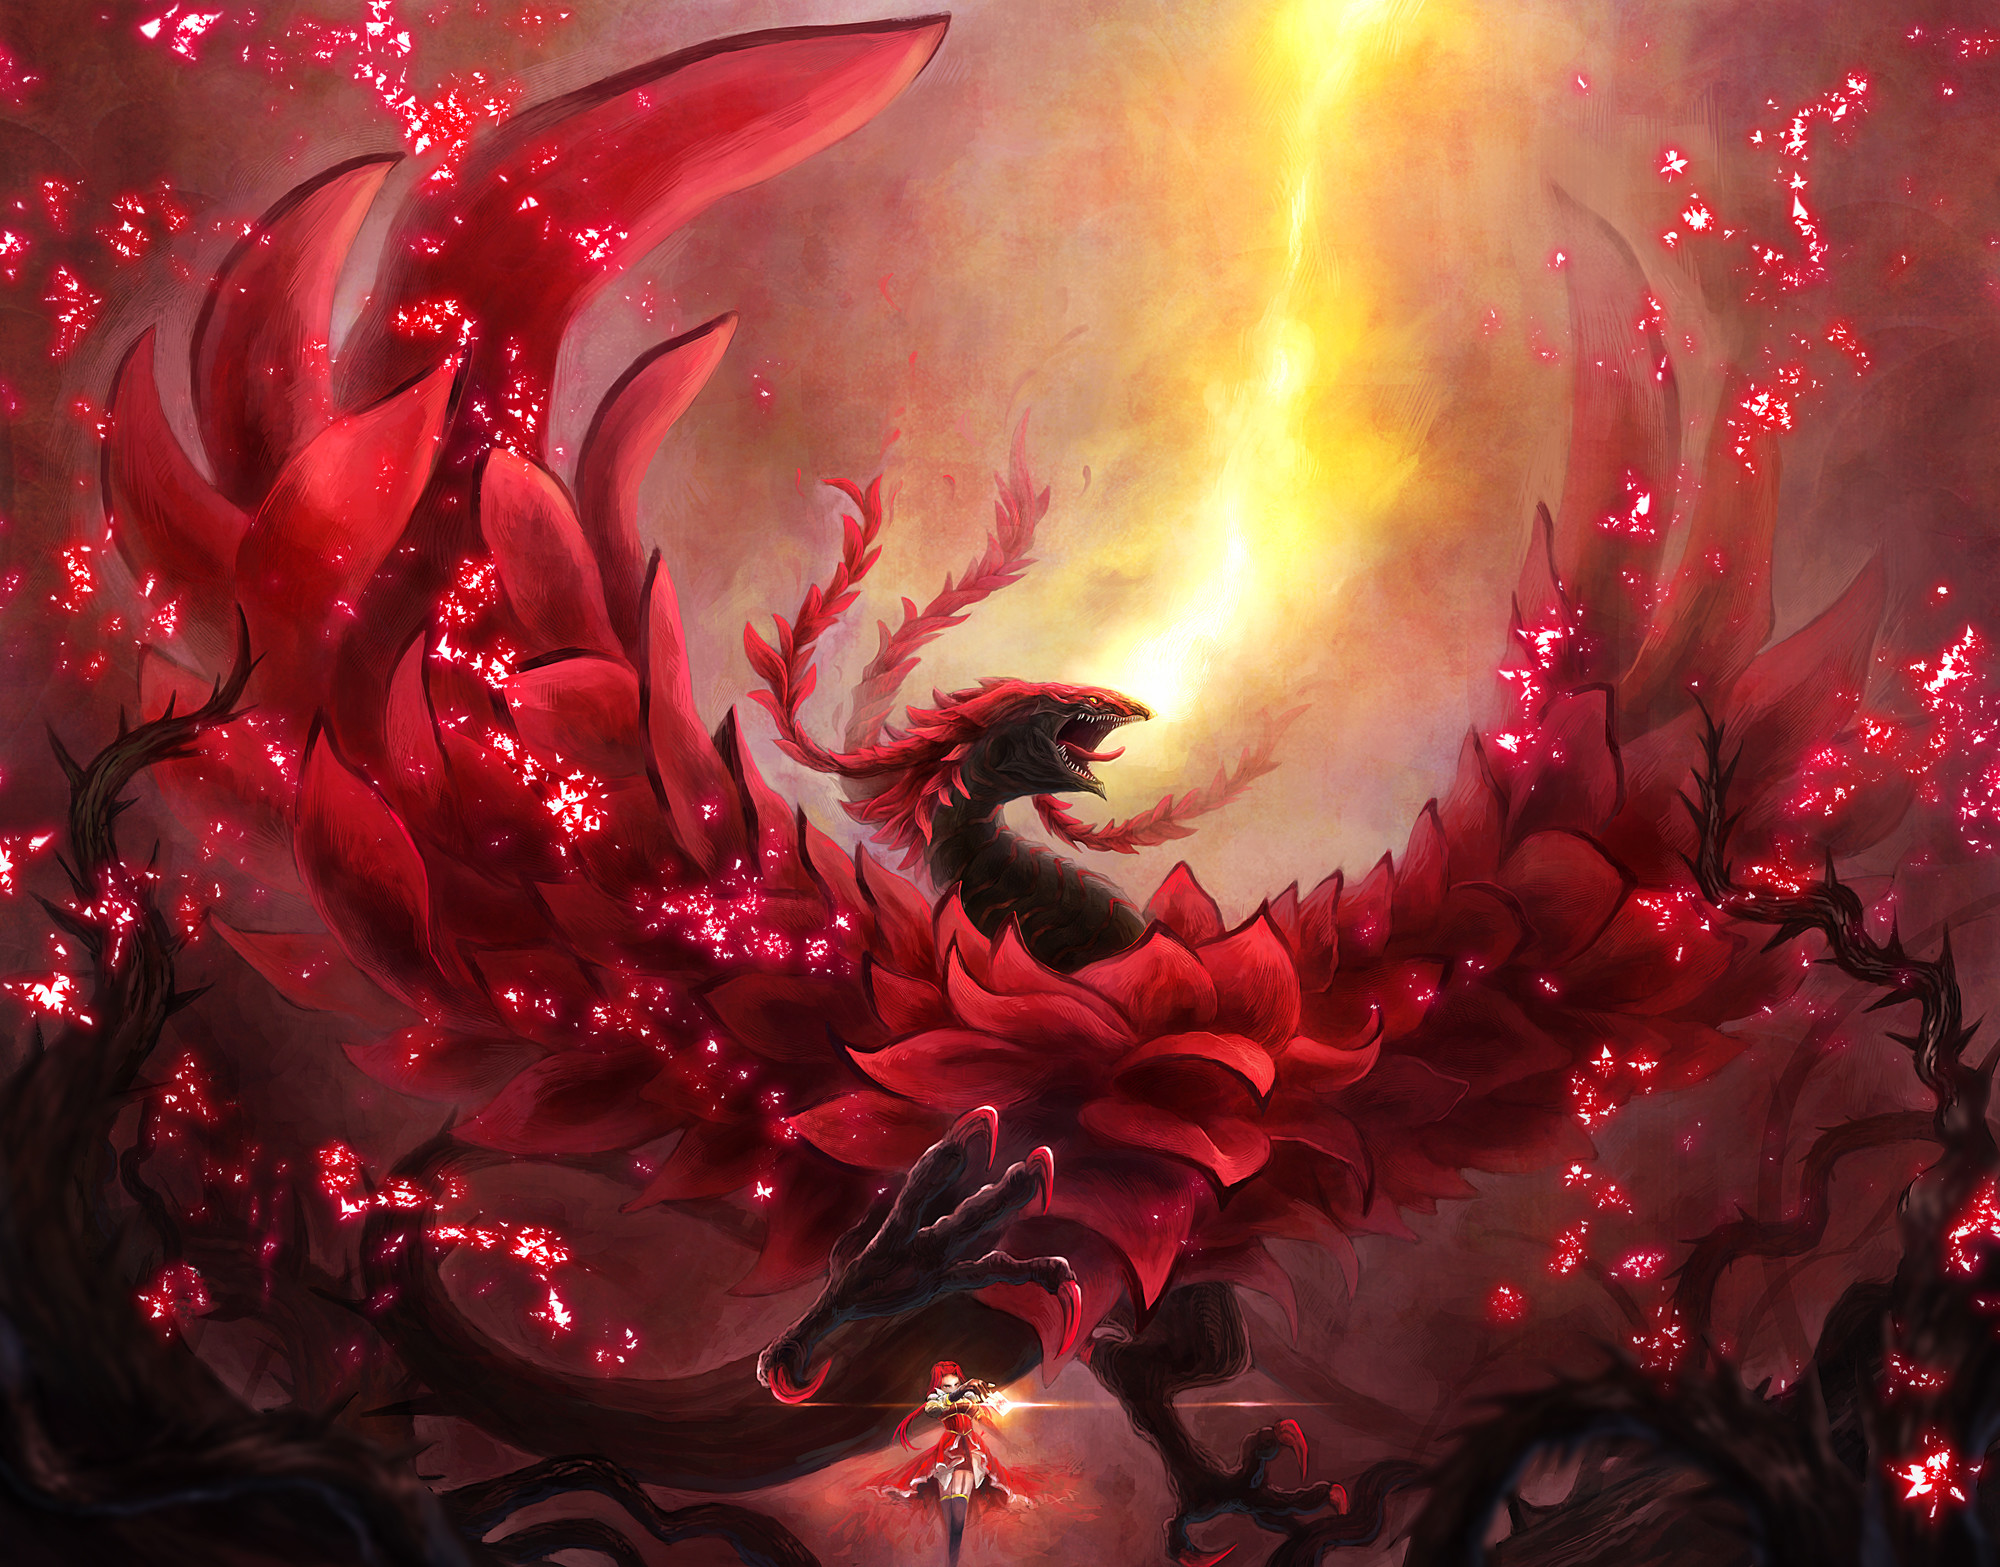 Yugioh slifer the sky dragon wallpaper wallpapertag - Dragon backgrounds 1920x1080 ...